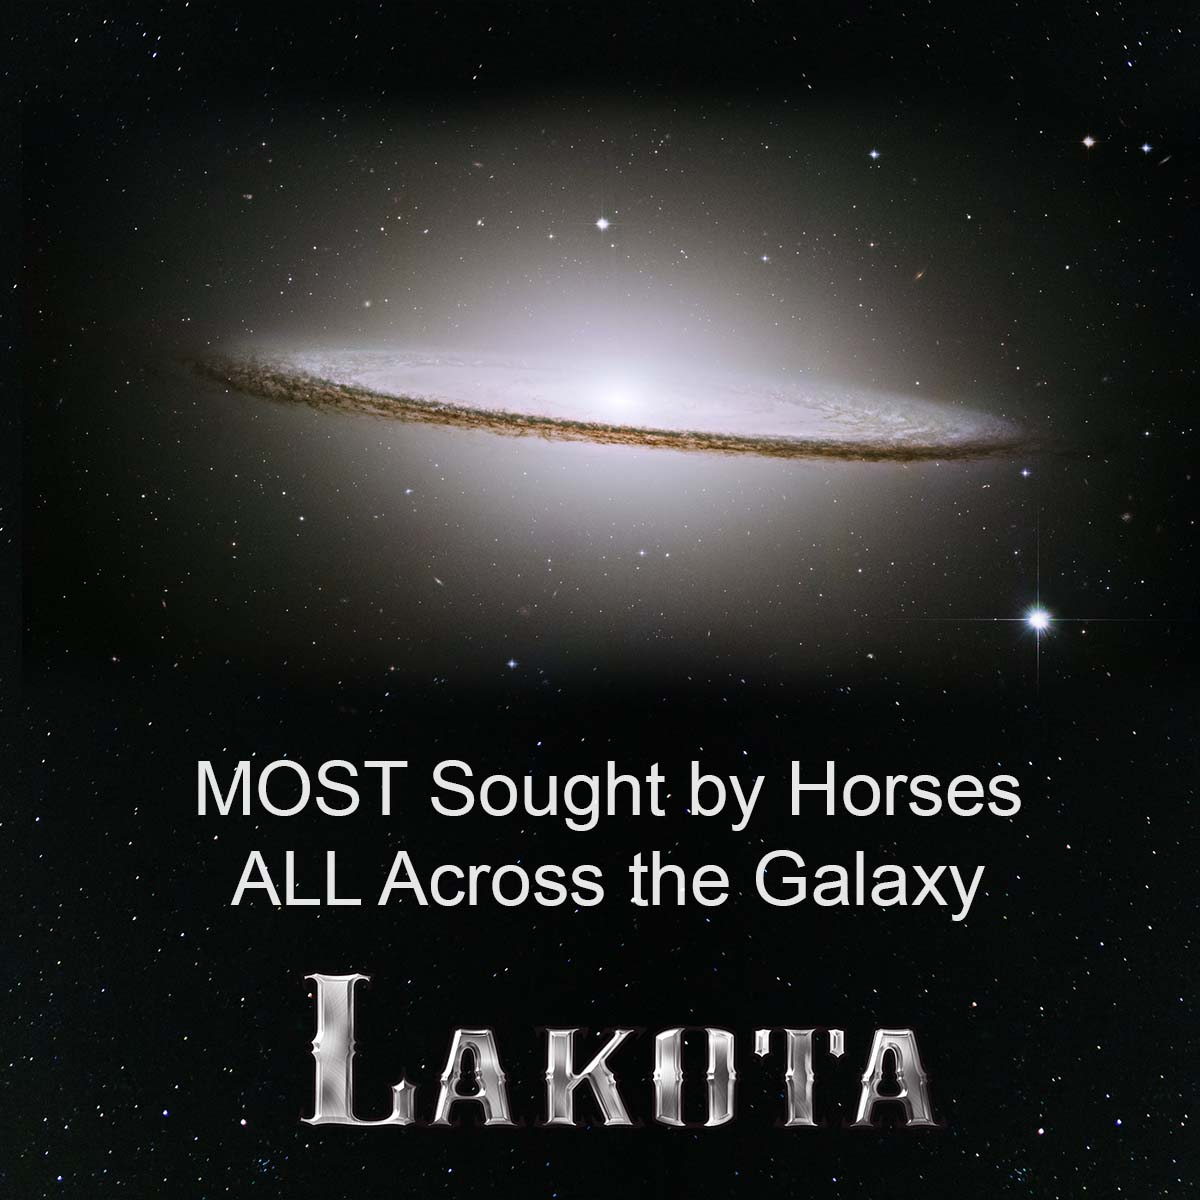 Lakota Star Wars Image